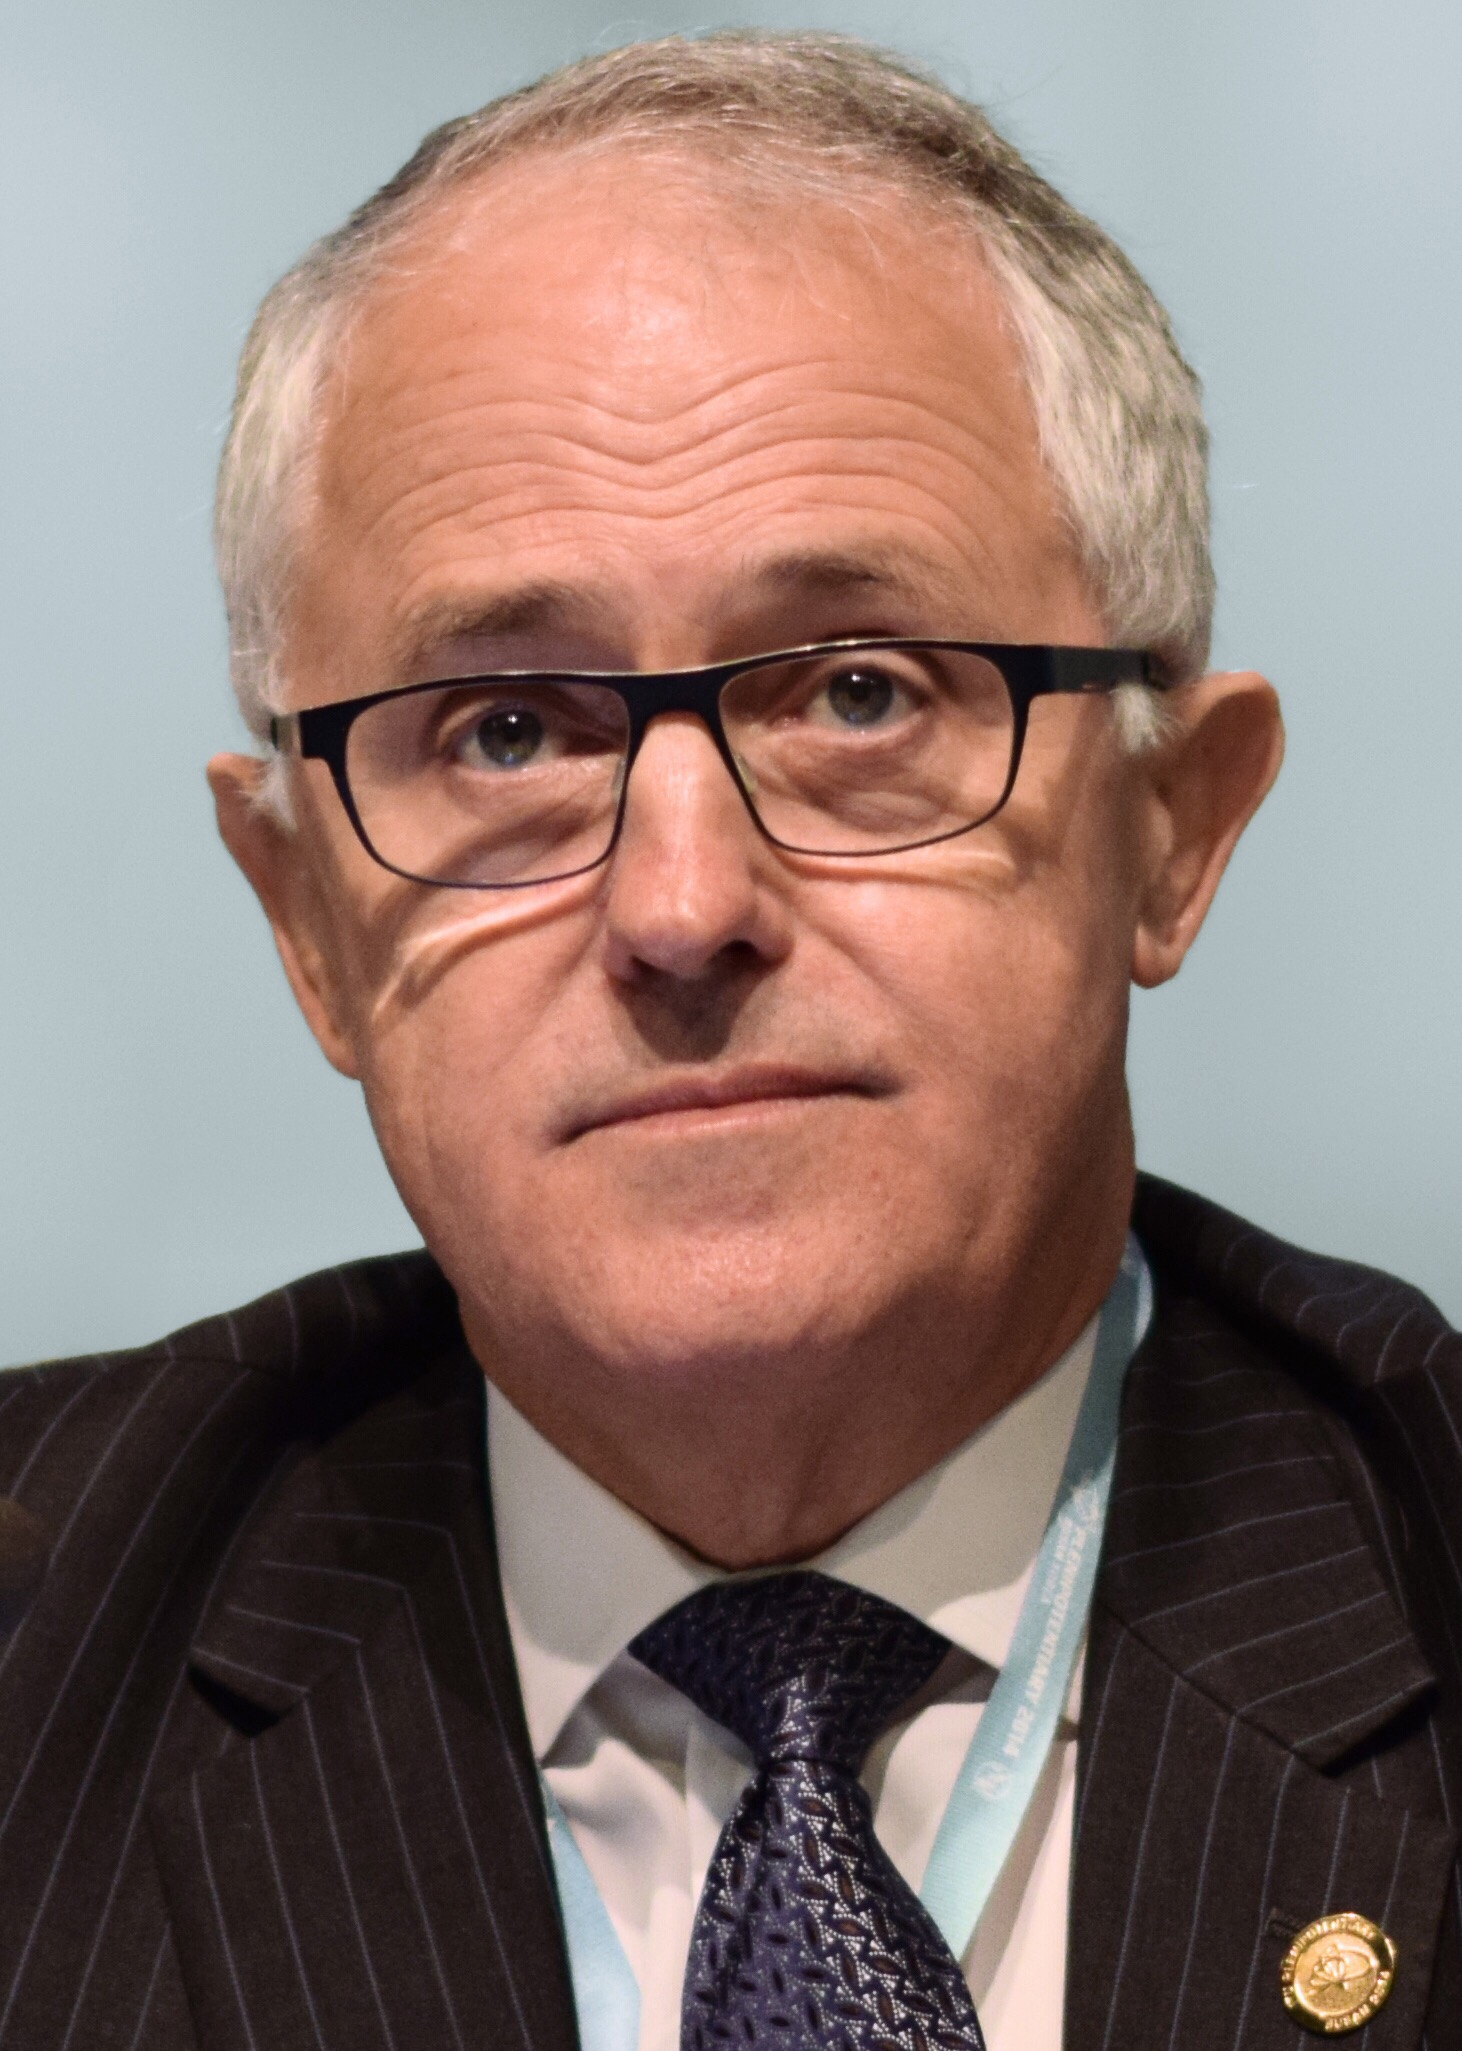 Turnbull capitulates to the Liberal Party's right wing over 18C